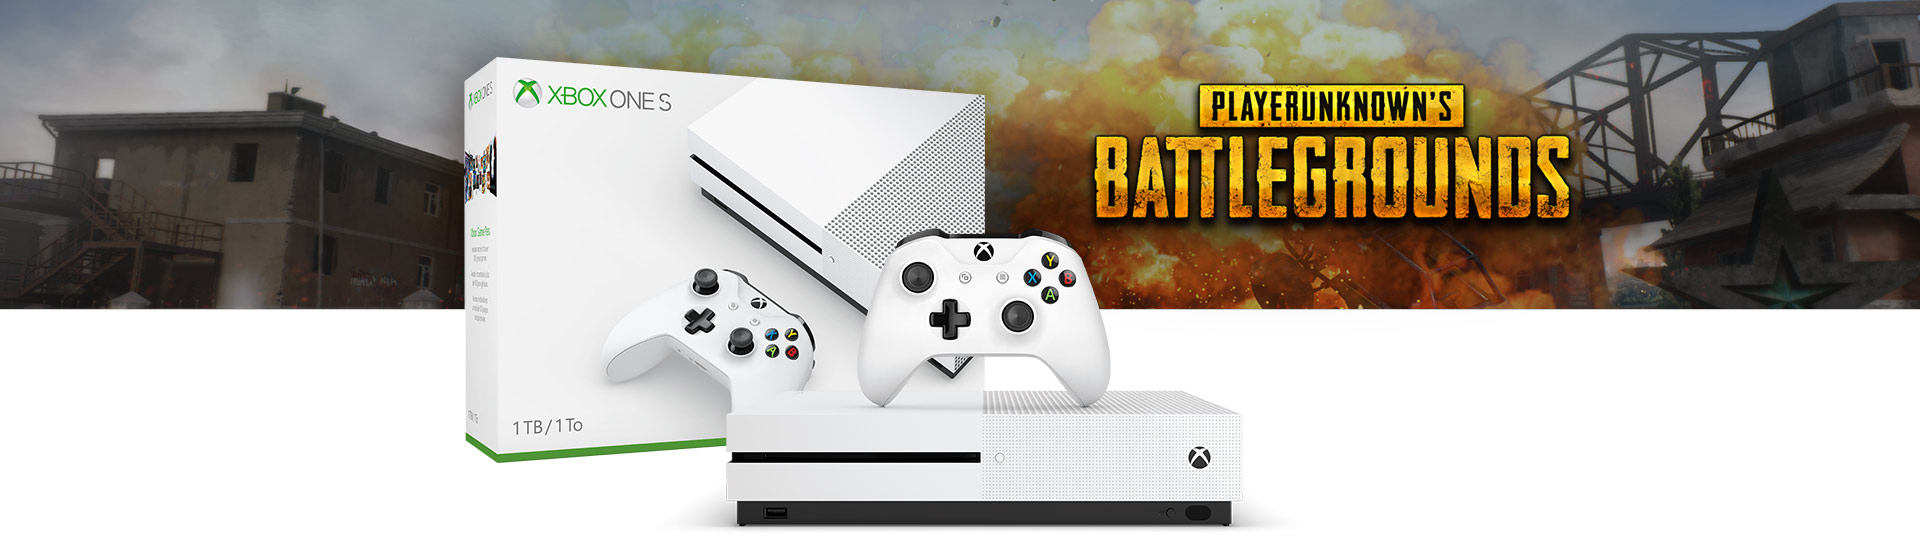 Xbox One S PLAYER UNKNOWN'S BATTLEGROUNDS Bundle (1TB)